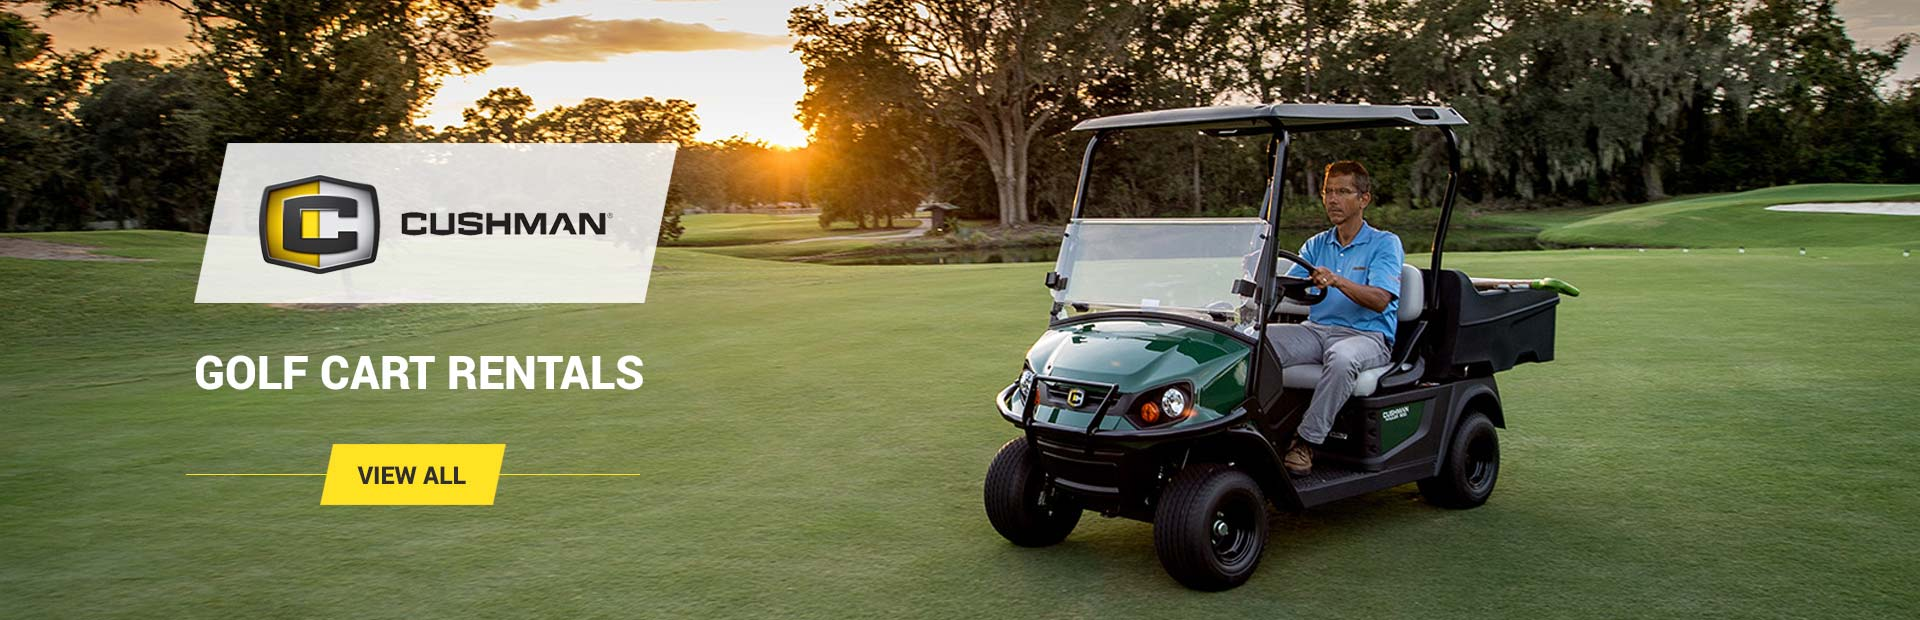 Rent Cushman Golf Carts for Events